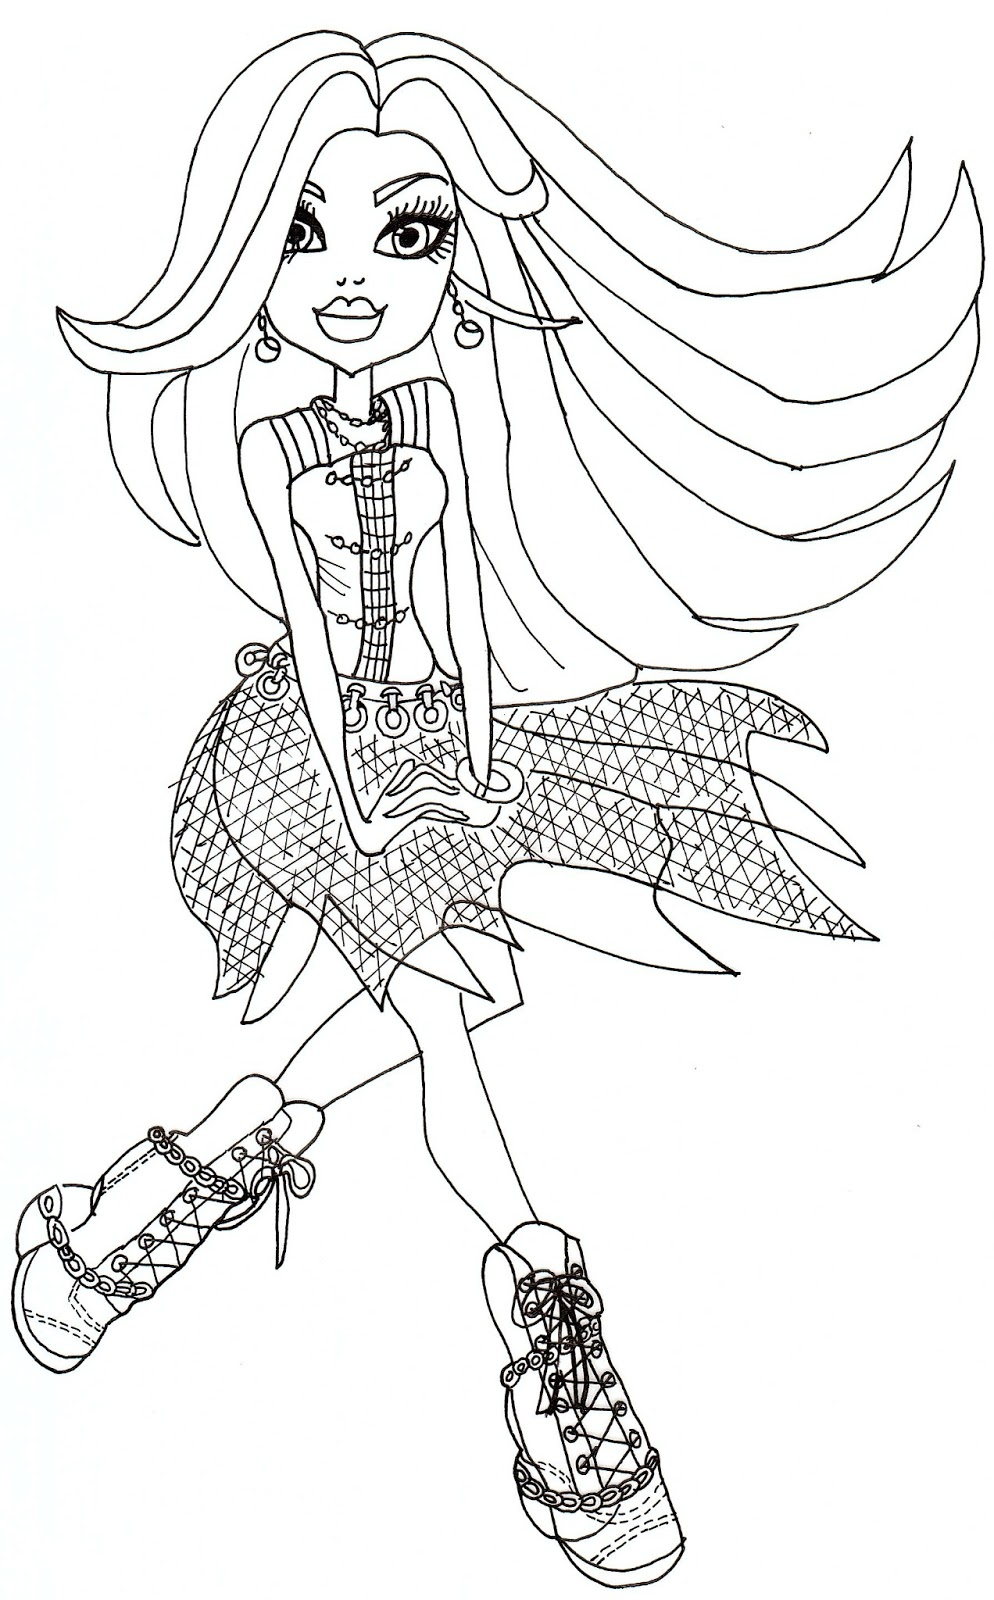 Free coloring pages for june - Floating Spectra Coloring Page